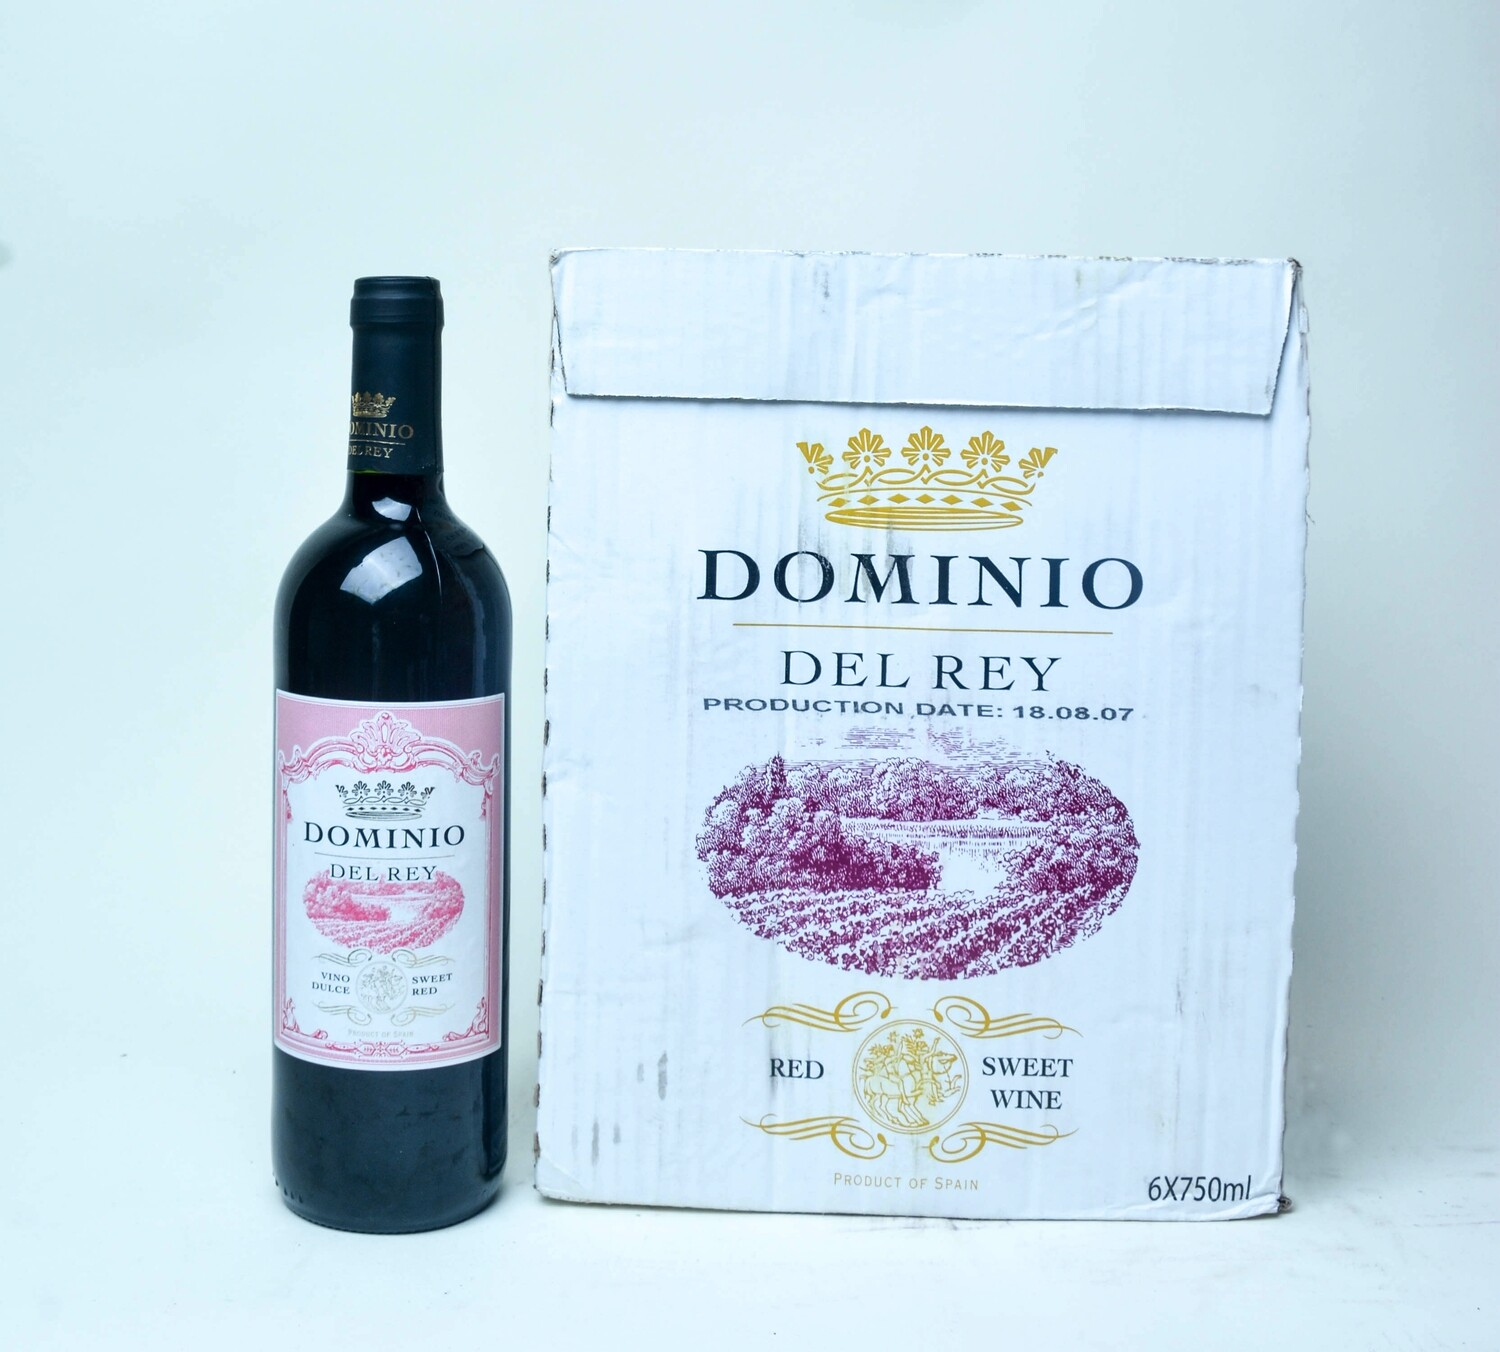 DOMINIO DEL REY SWEET RED WINE 75CL